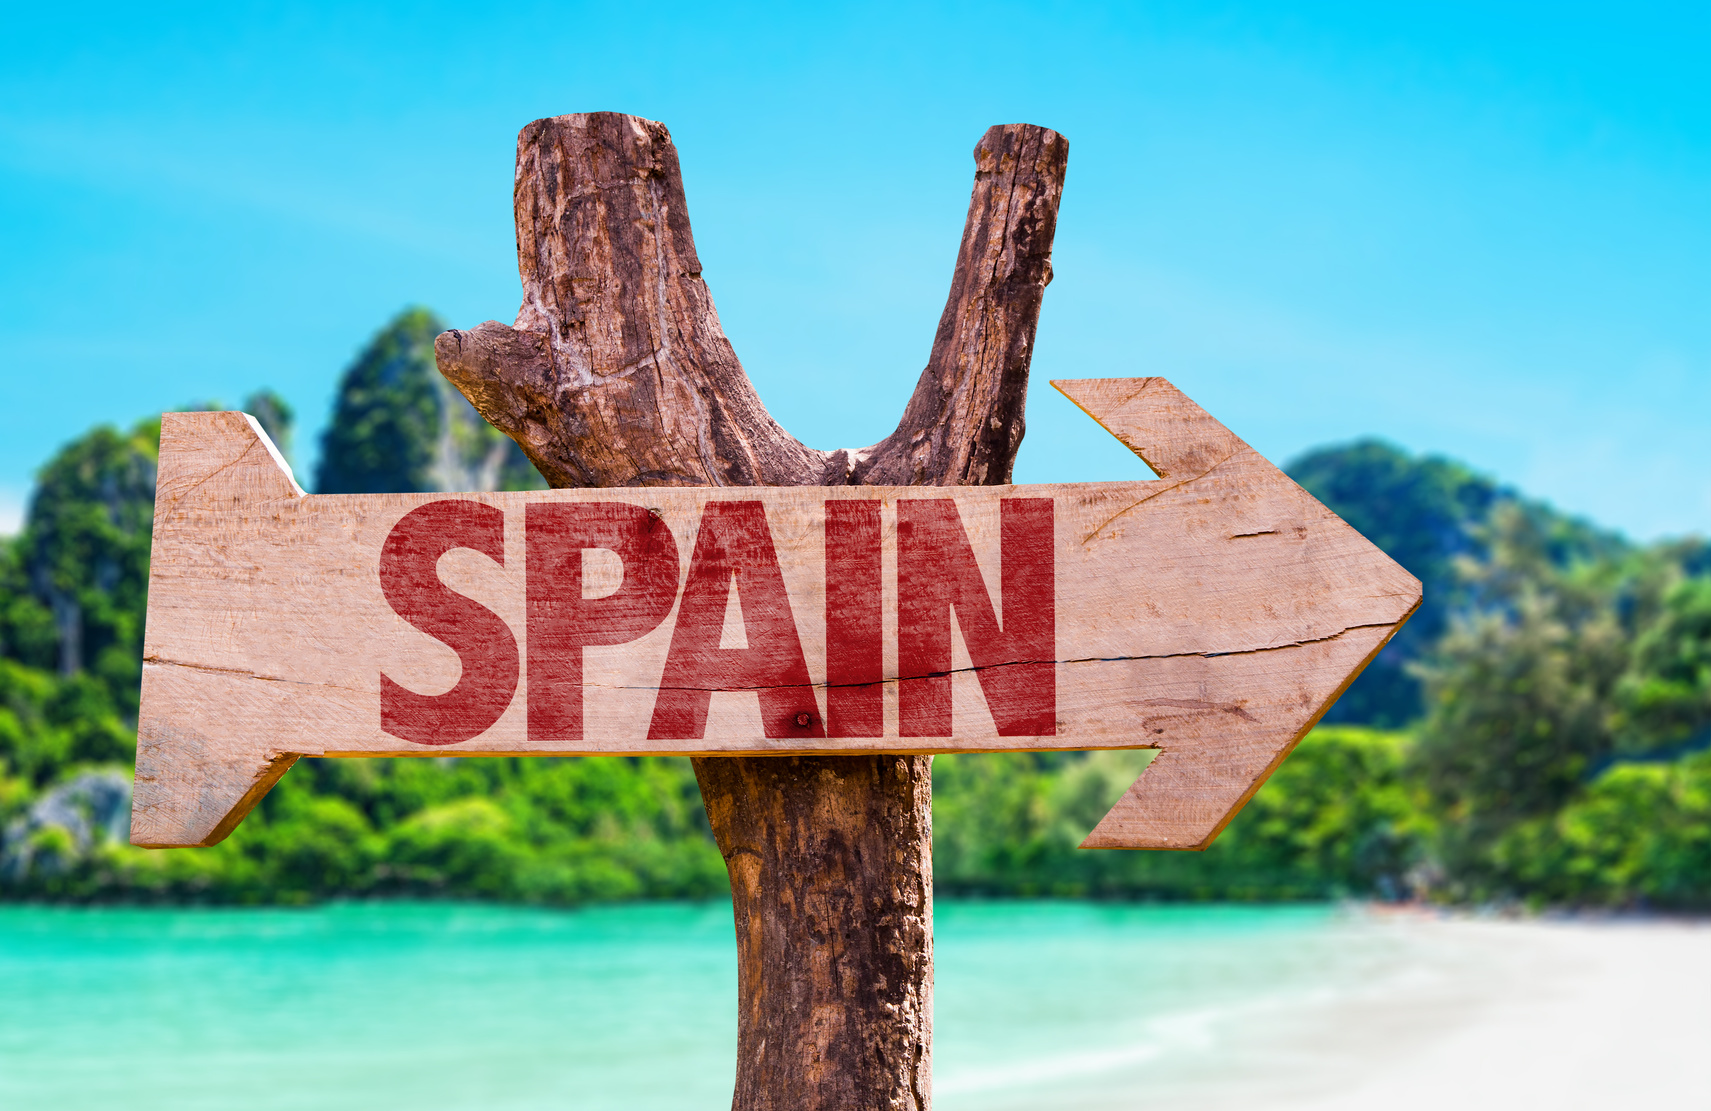 Spain wooden sign with beach background